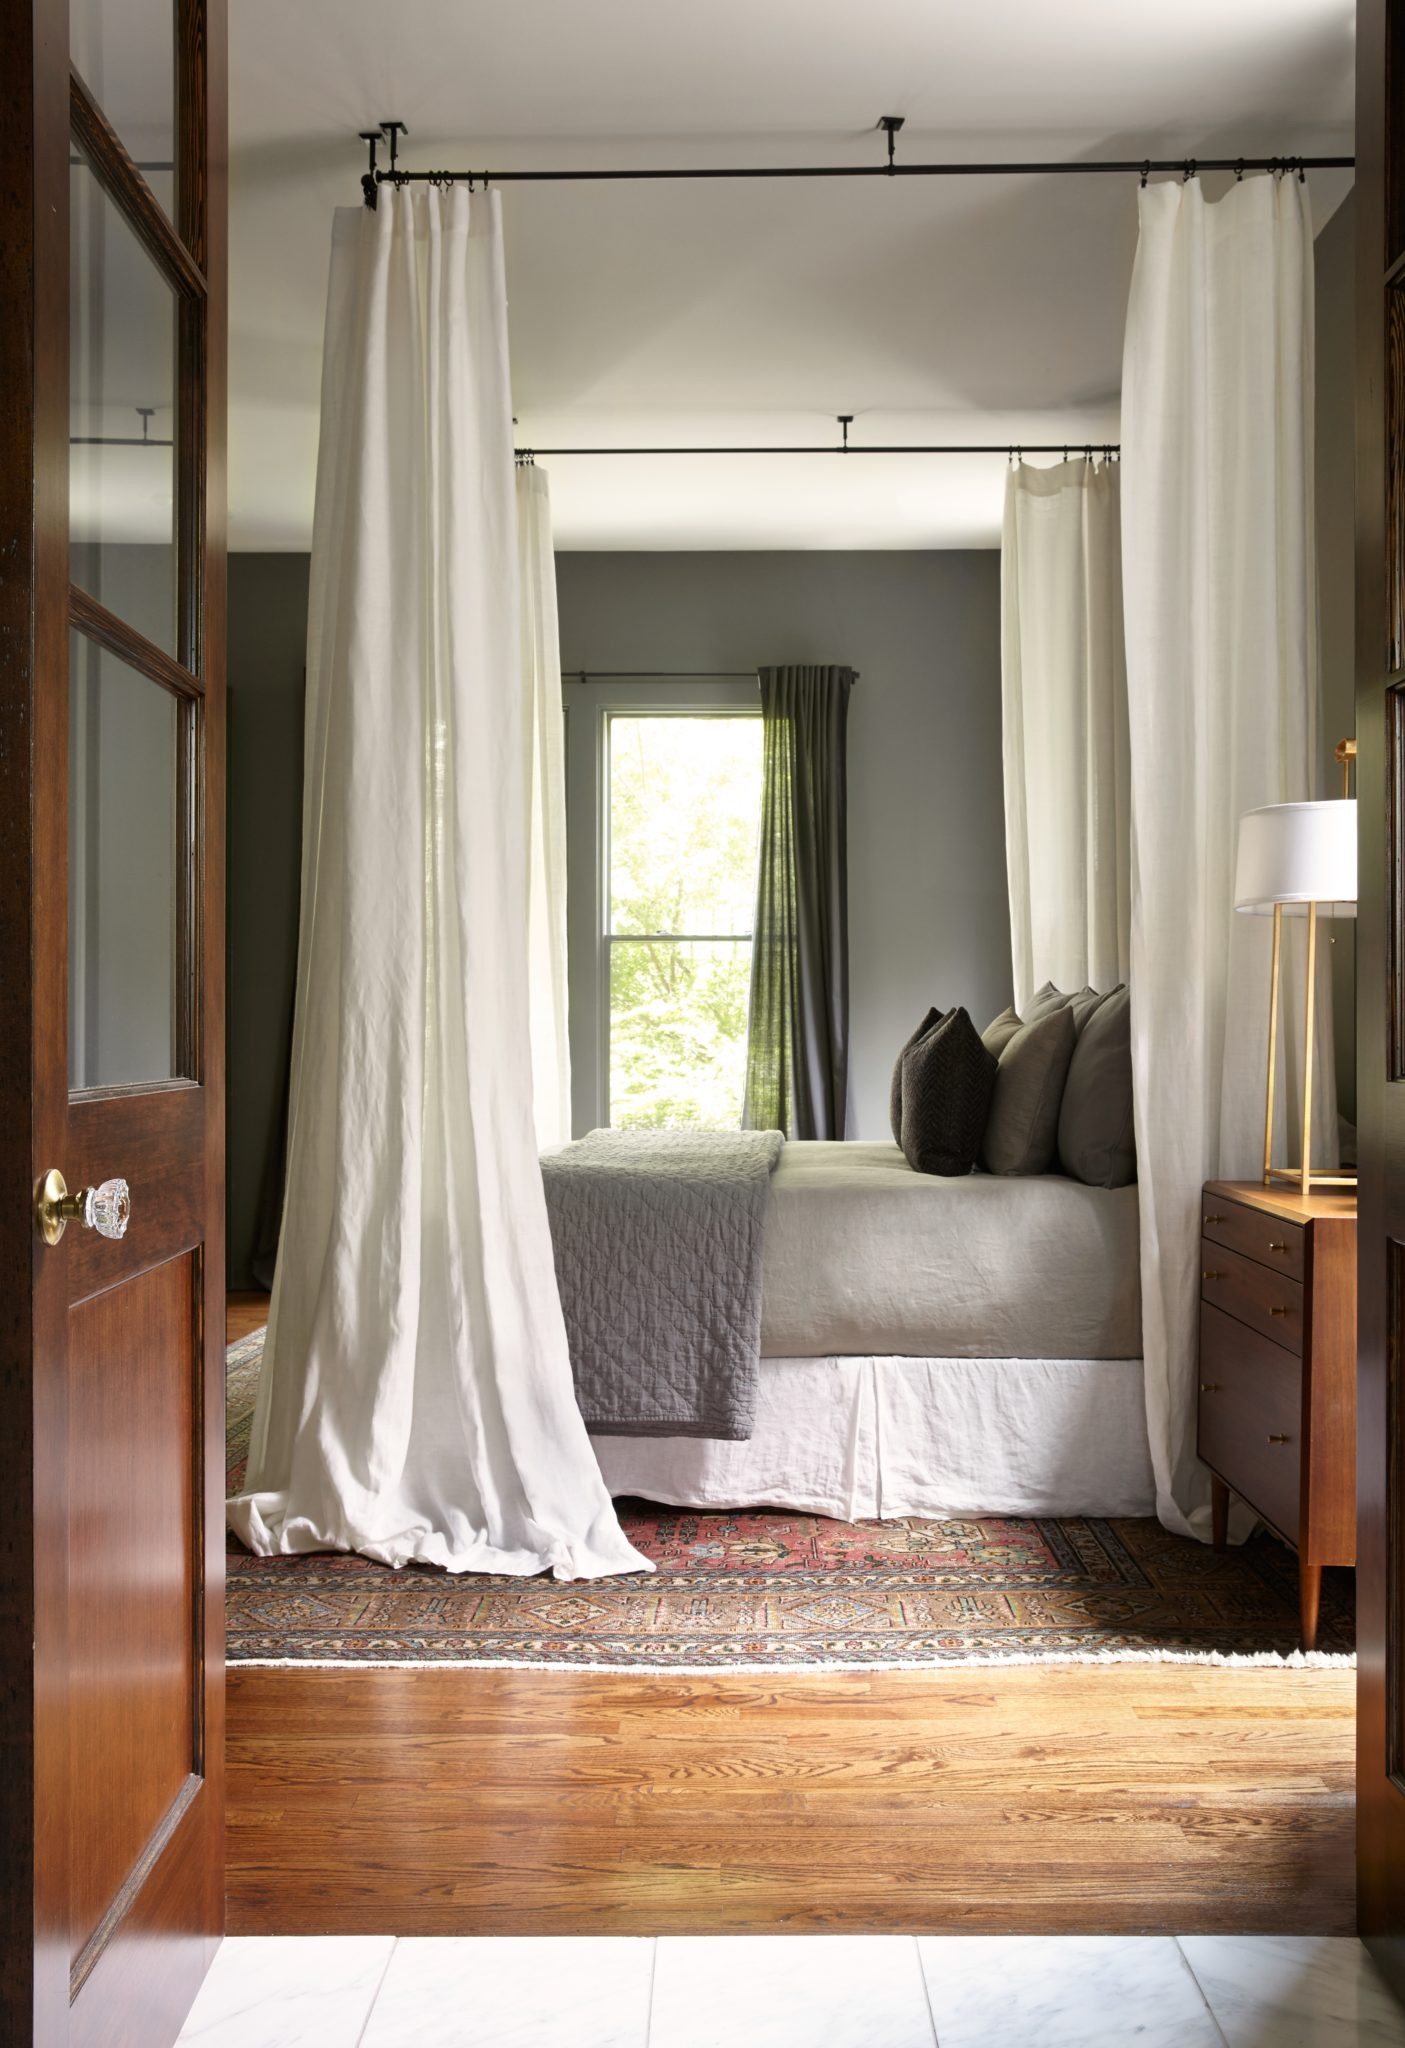 32 Bedrooms With French Doors Chairish Blog